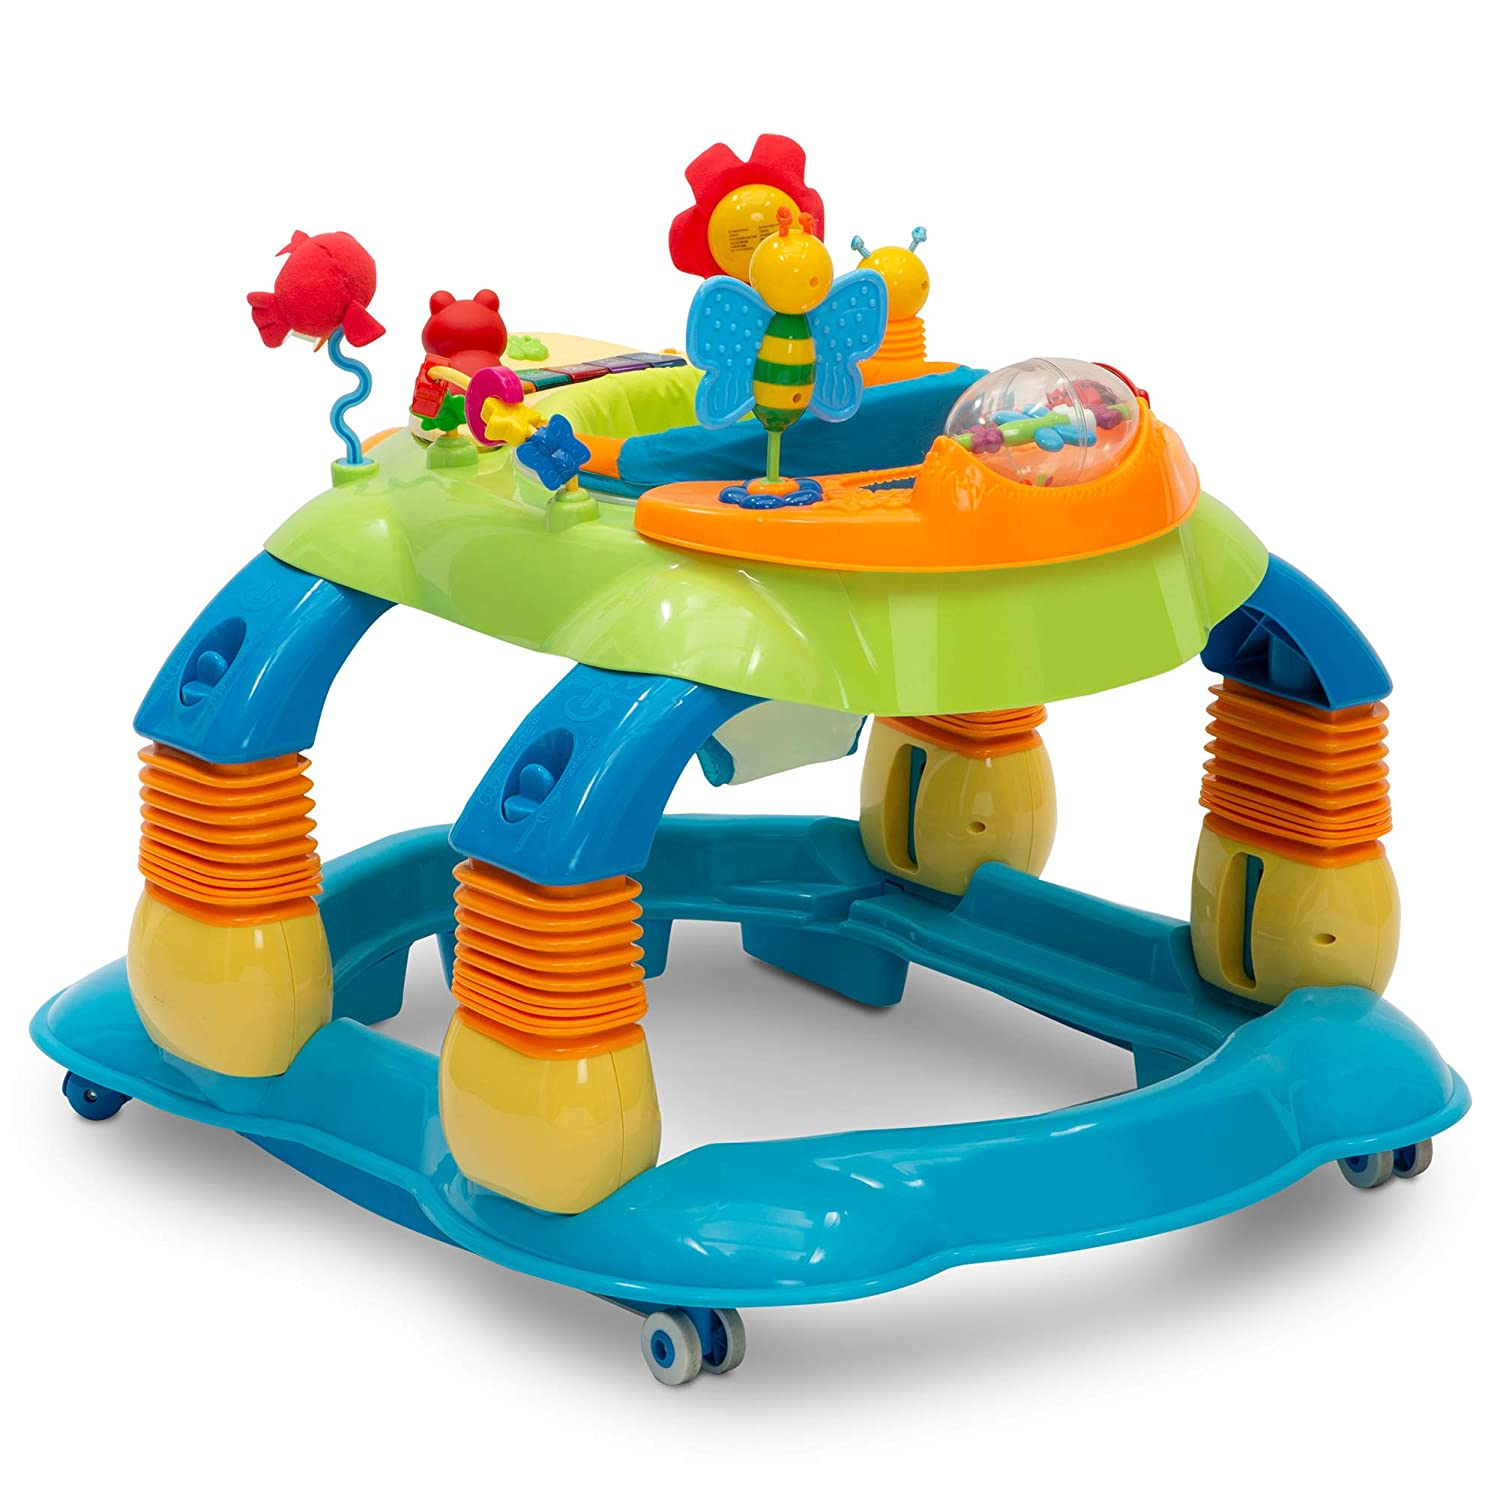 Delta Children 4-in-1 All-in-one Baby Walker discover and play musical walker for 6-month old baby